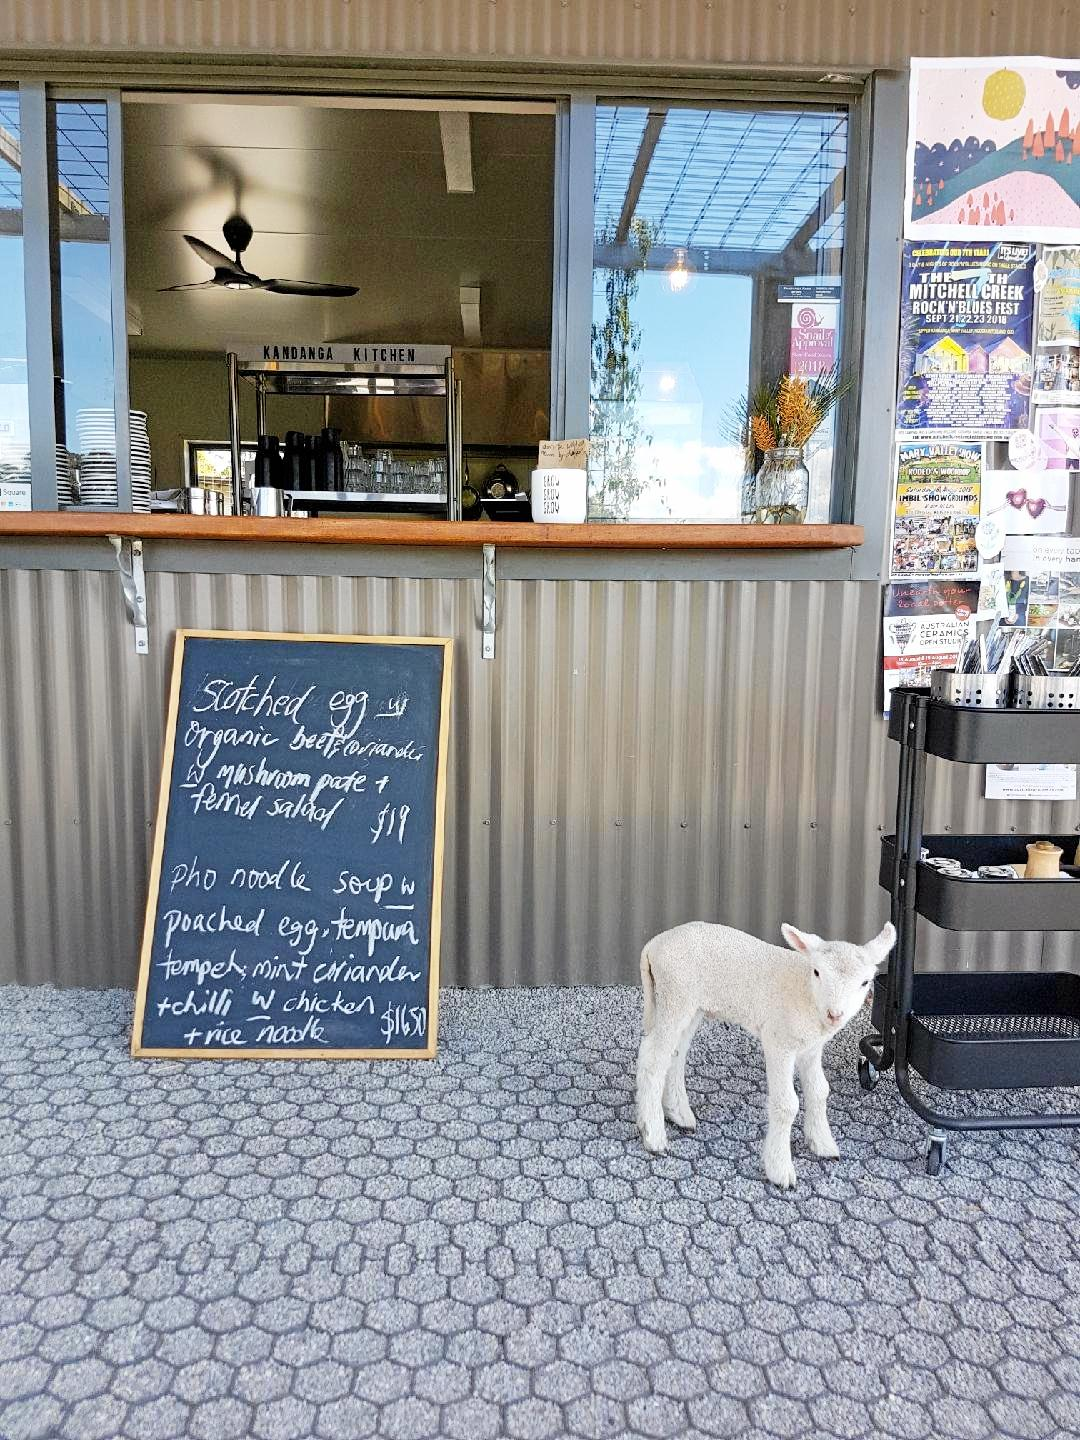 Lamby hanging out at his favourite cafe - the Kandanga Kitchen.